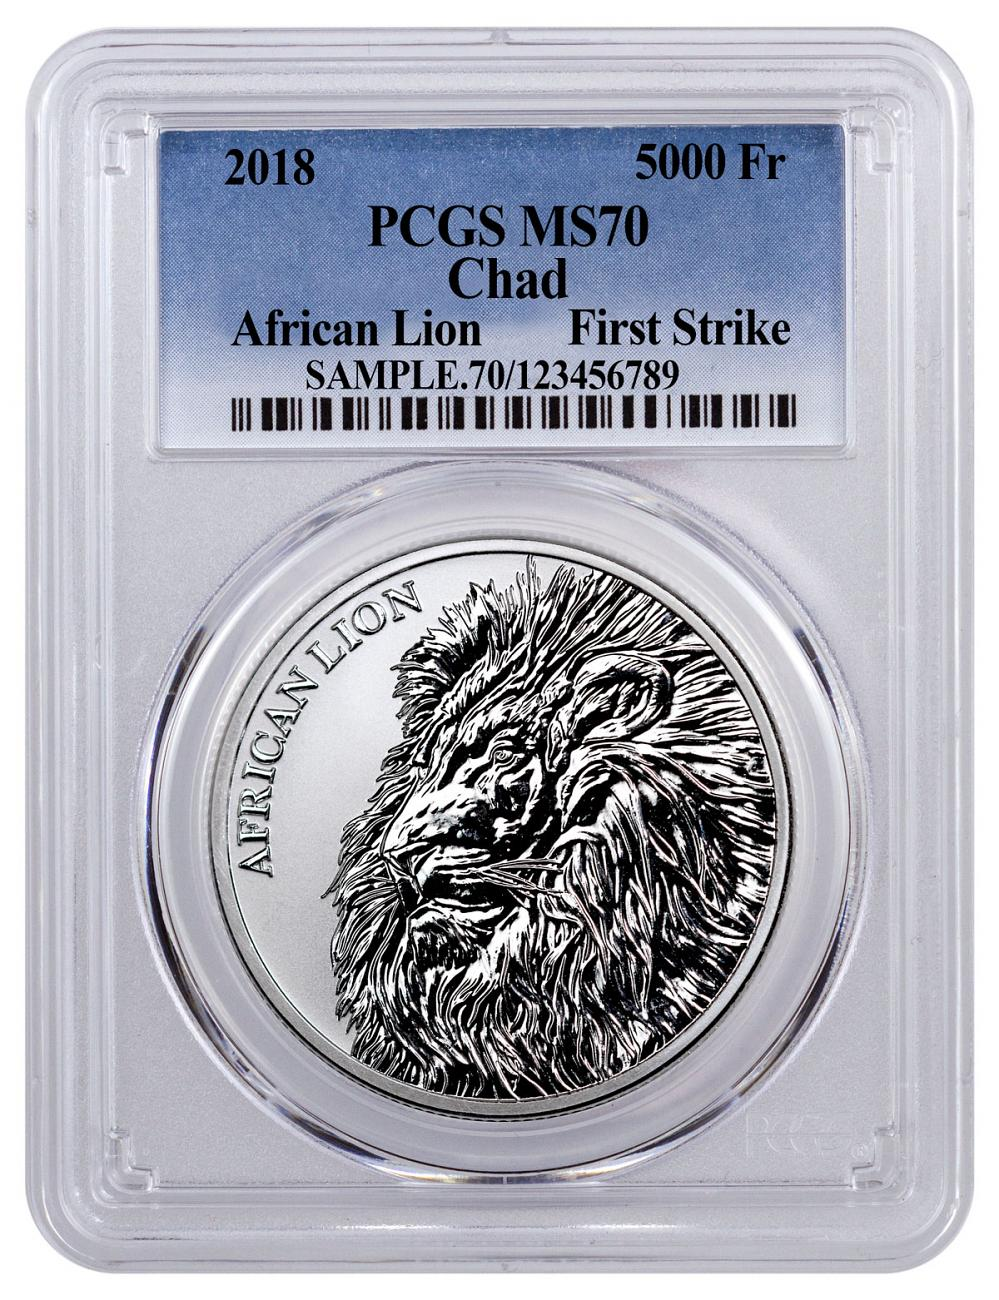 2018 Republic of Chad African Lion 1 oz Silver Fr5,000 Coin PCGS MS70 FS